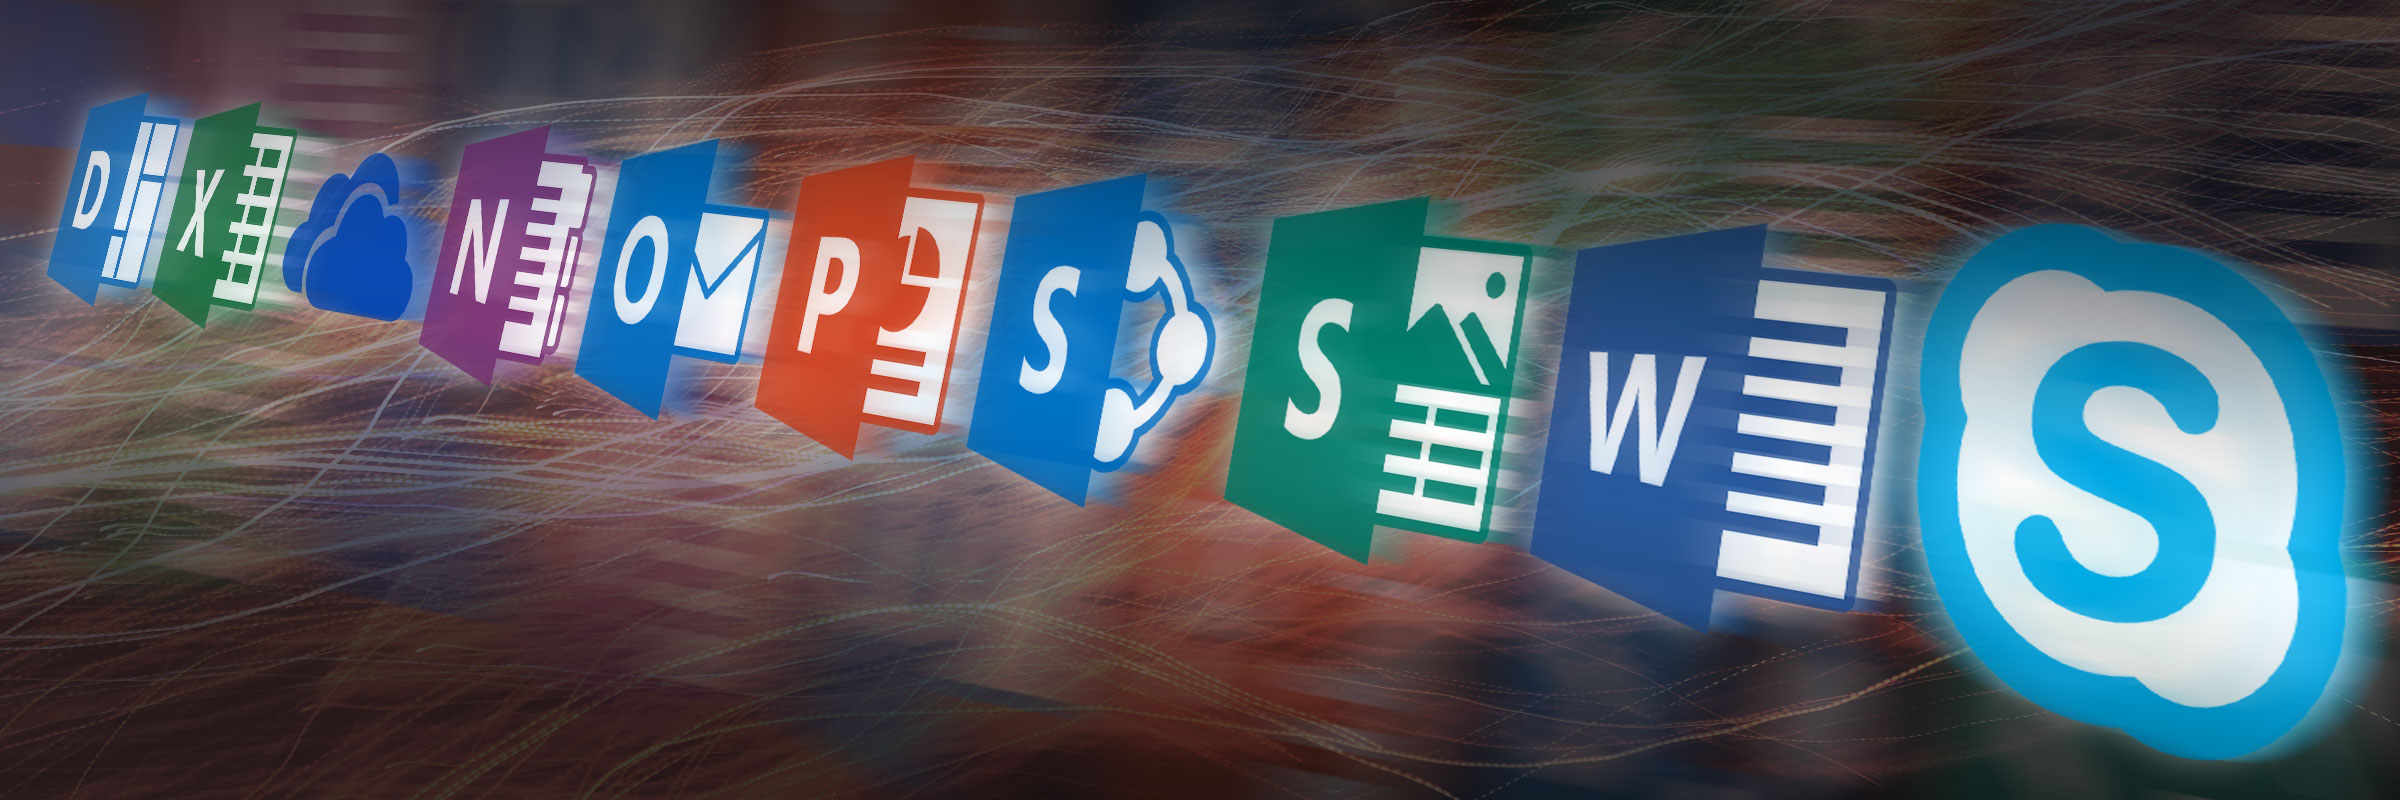 Office 365 product icons montage